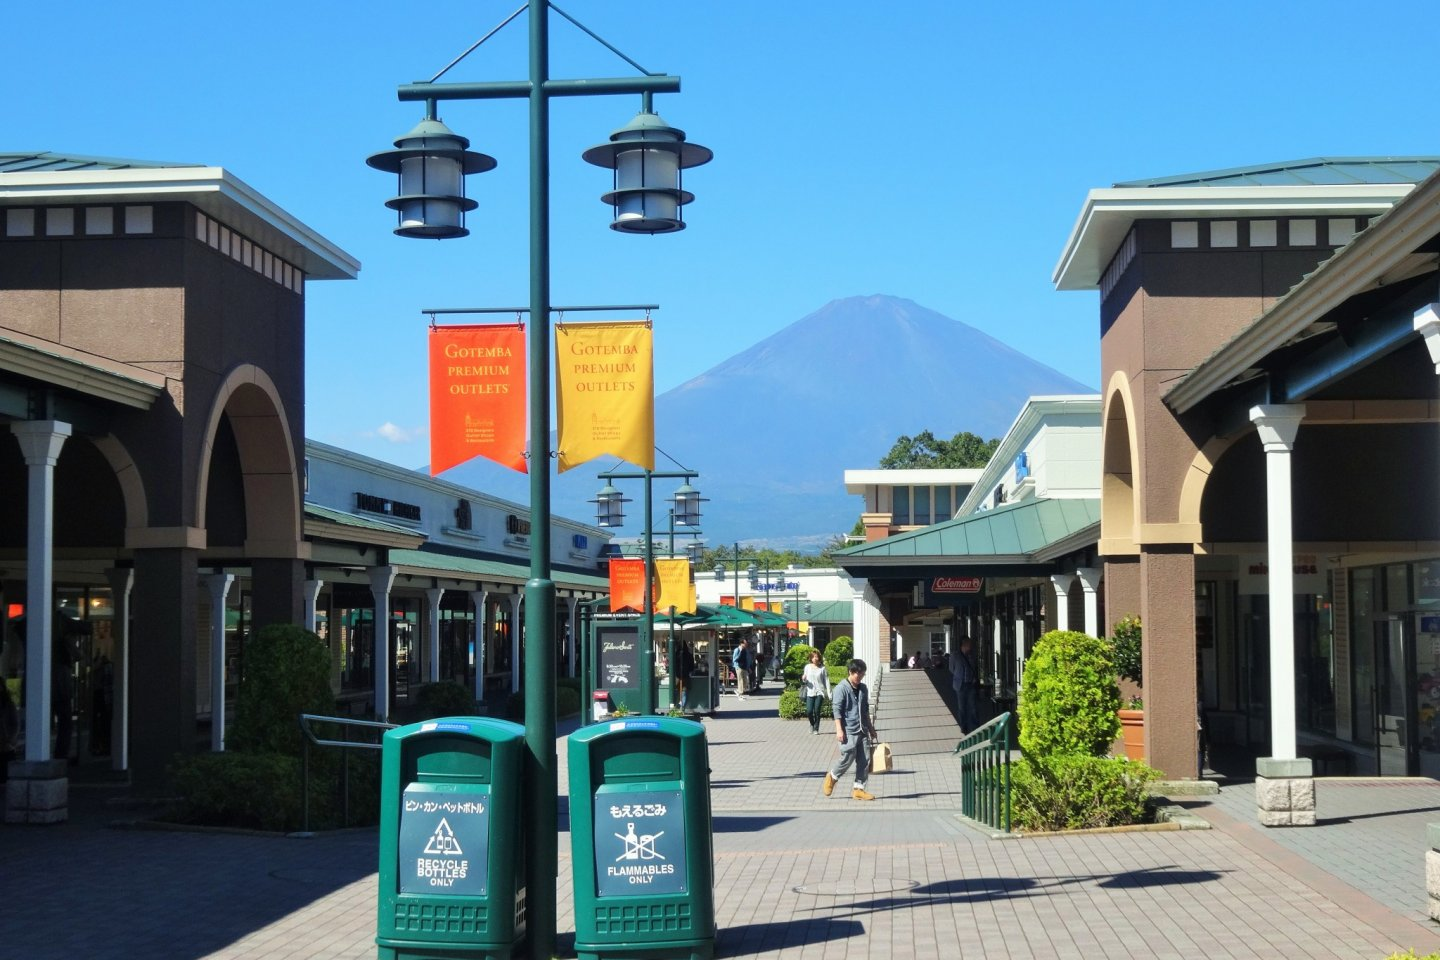 Mt Fuji looms over the Gotemba Premium Outlets